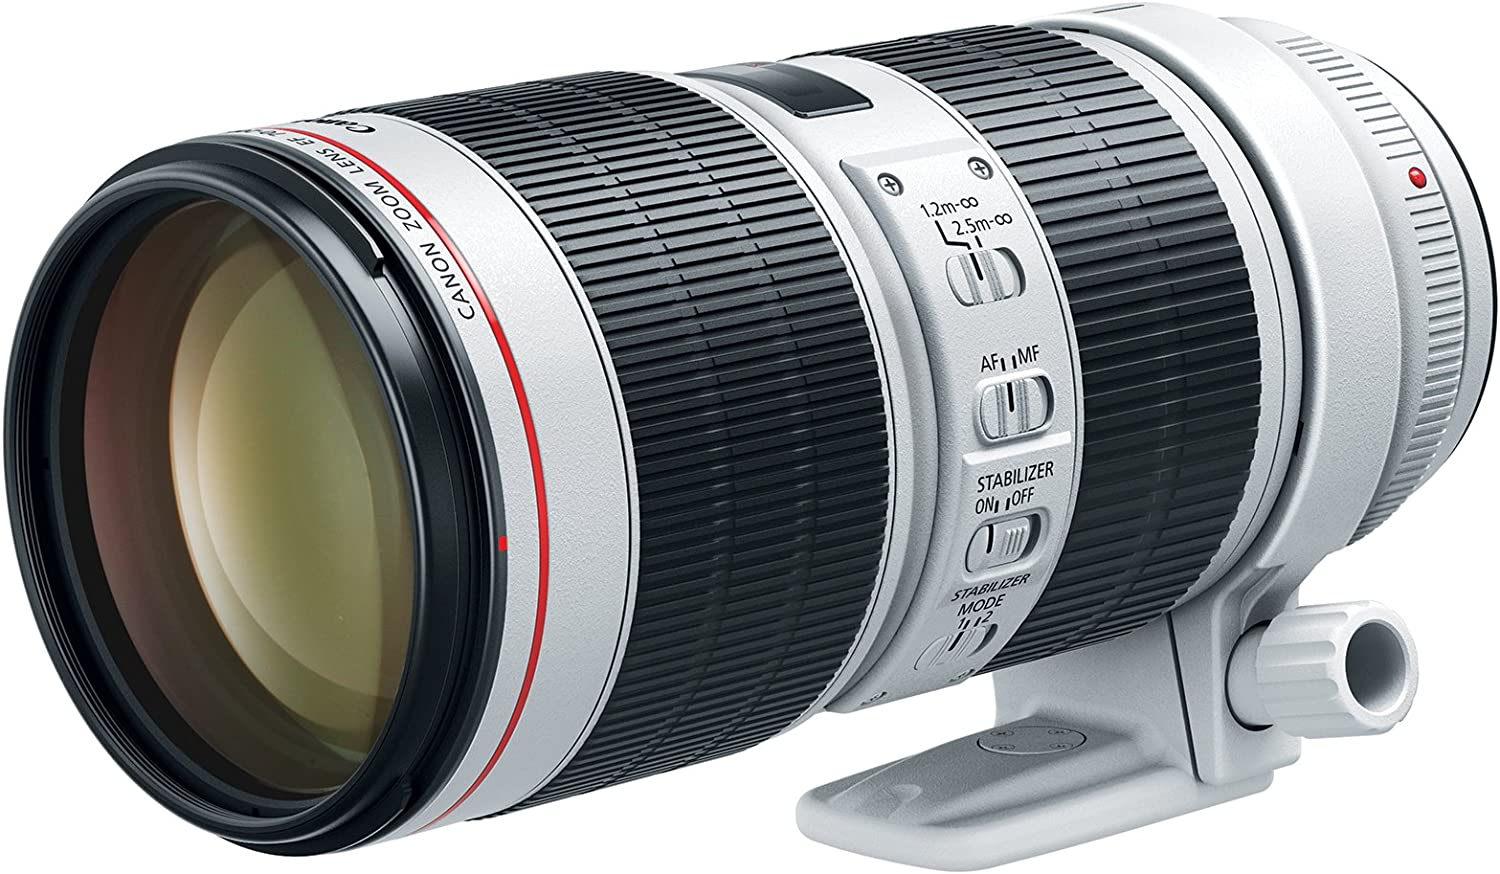 Amazon.com : Canon EF 70-200mm f/2.8L IS III USM Lens for Canon ...